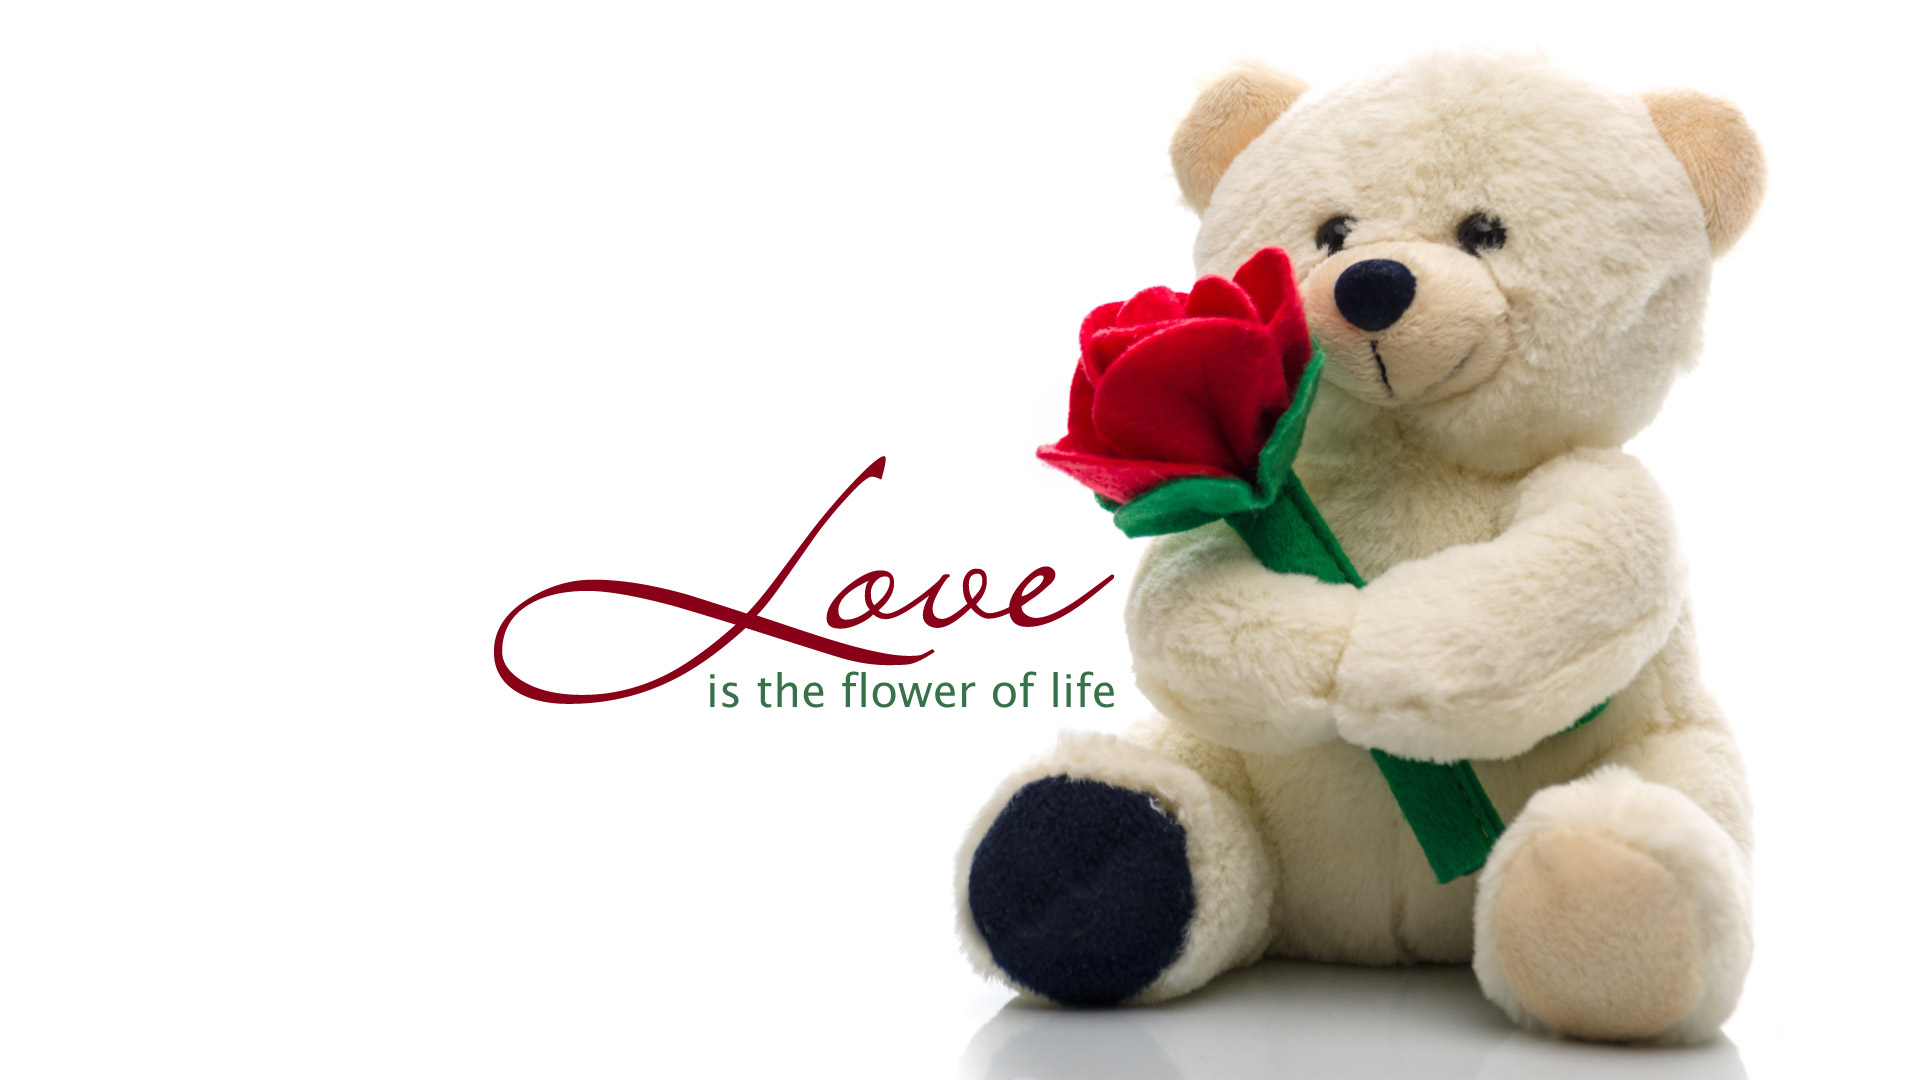 Cute Teddy Bear Live Wallpaper Free Download 35 Best Happy New Year 2019 Teddy Bear Pictures With